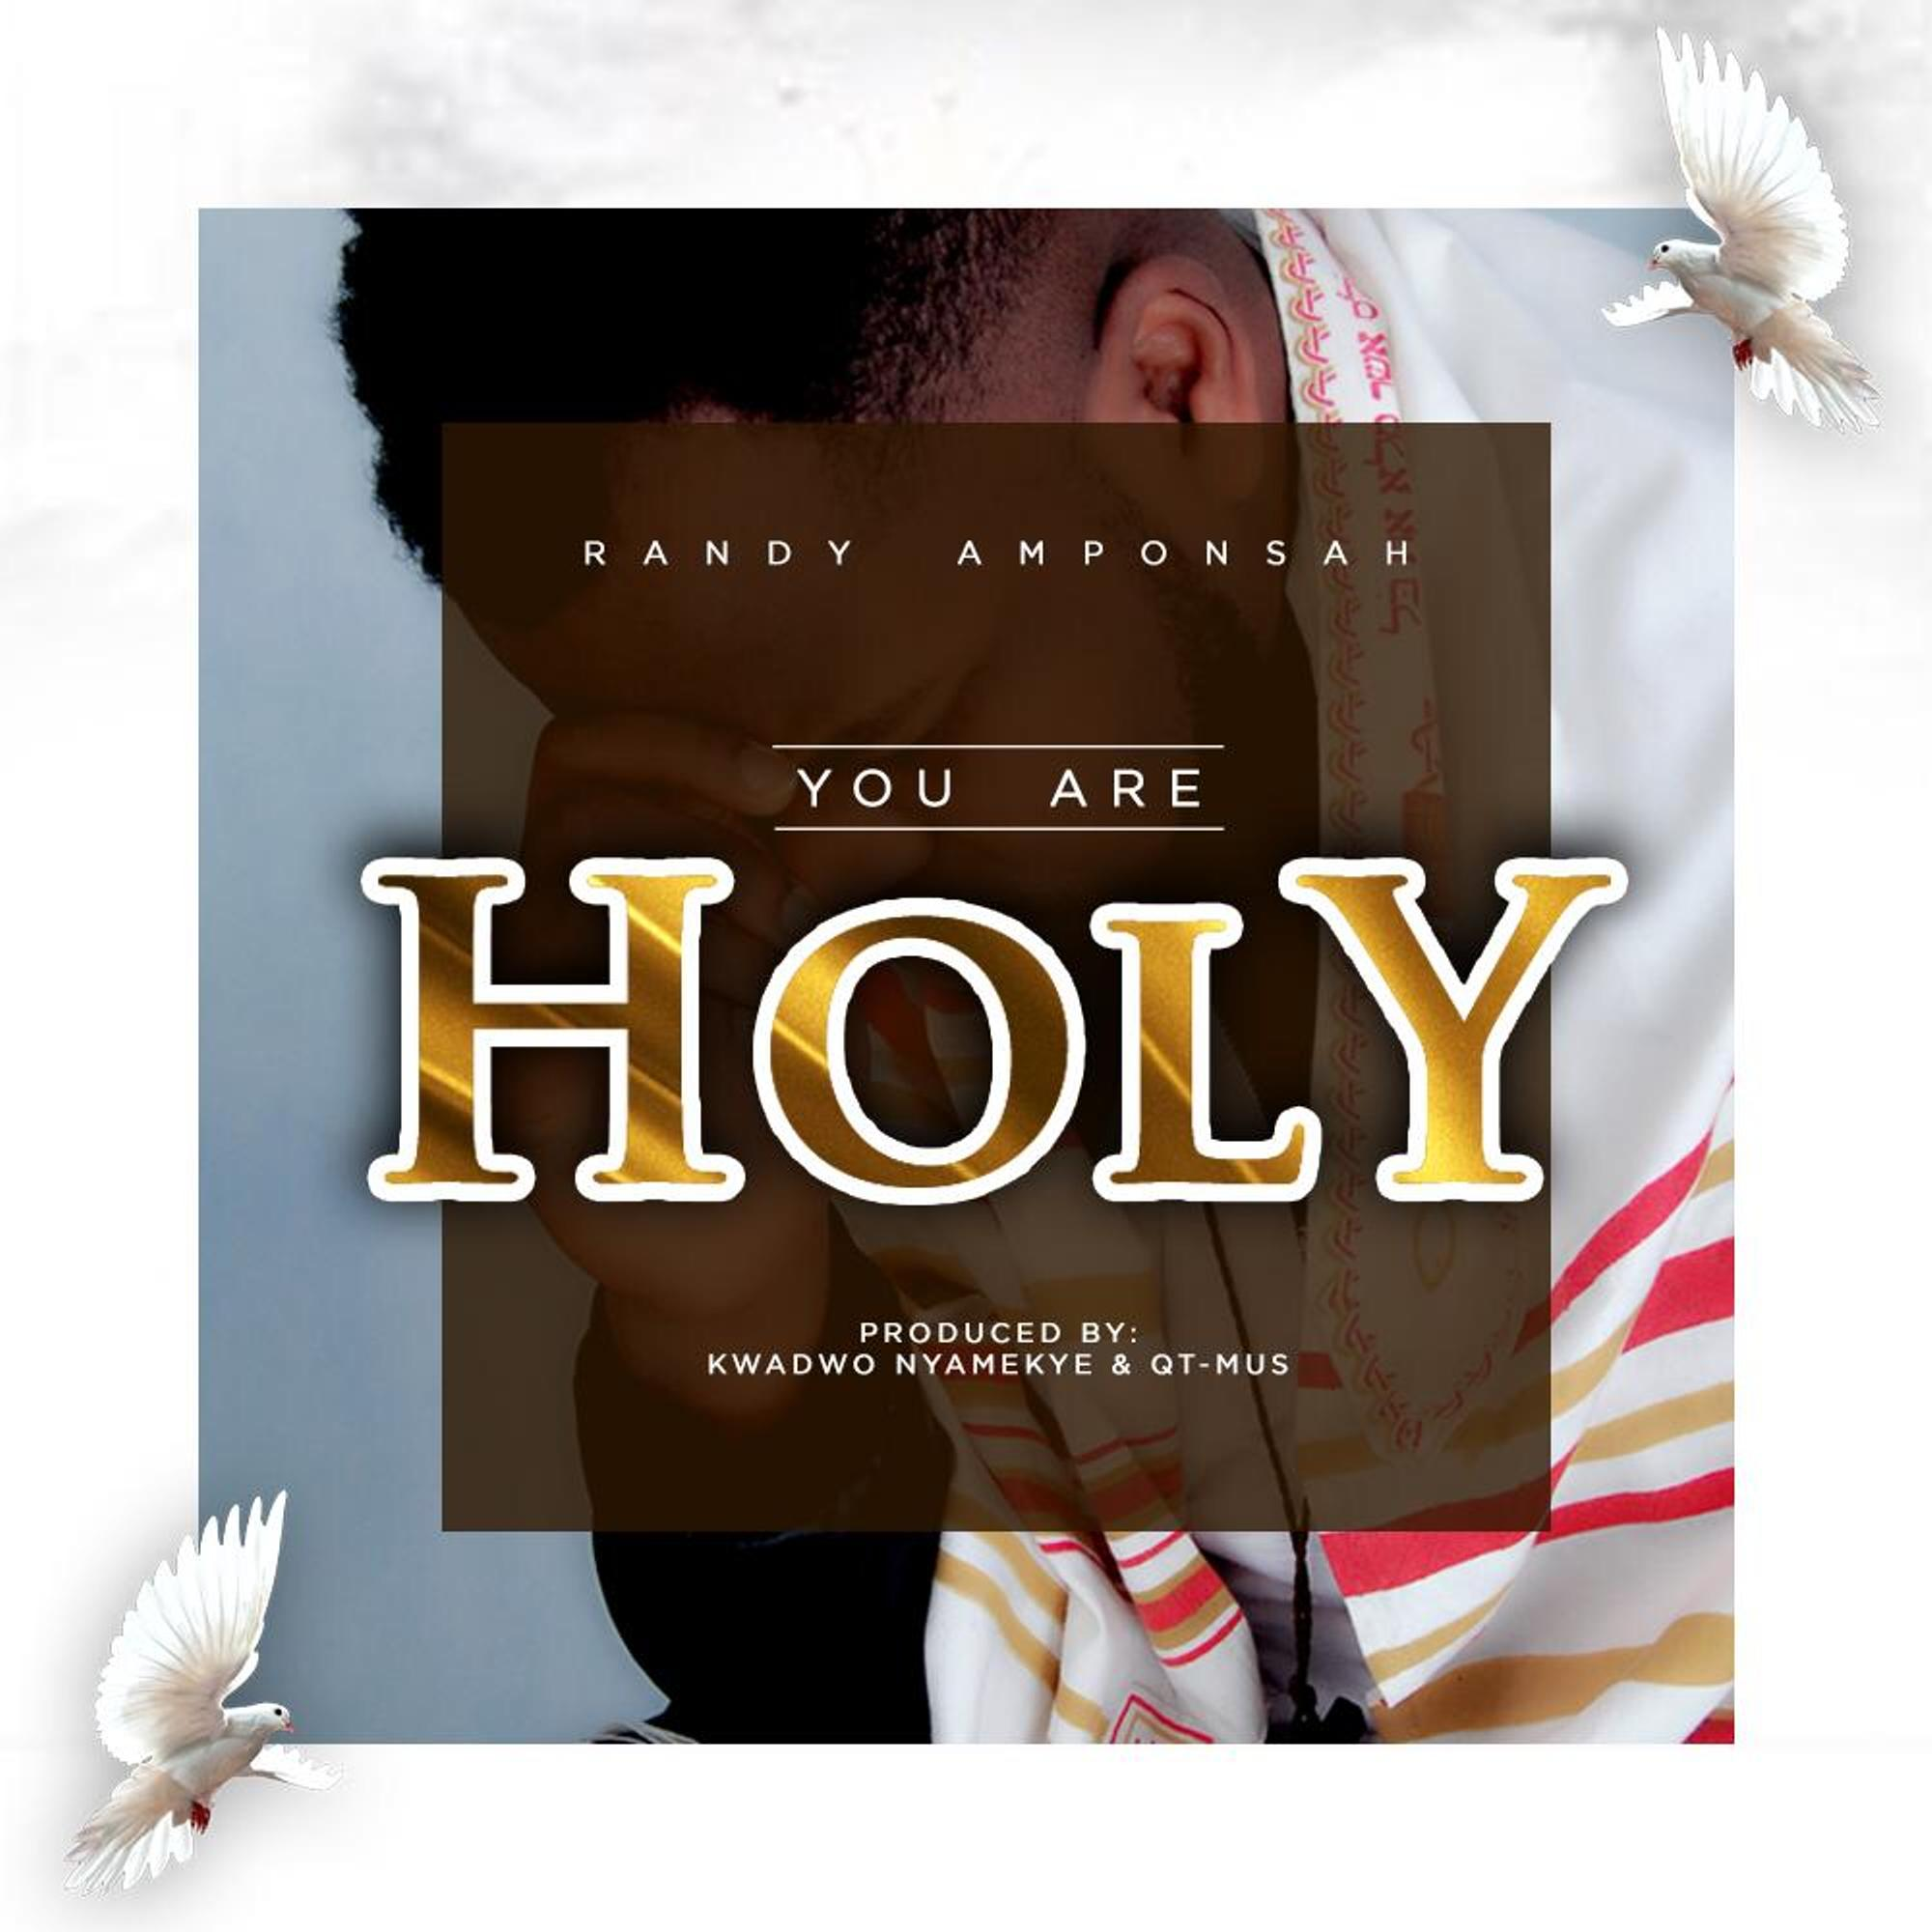 Randy Anponsah - You Are Holy